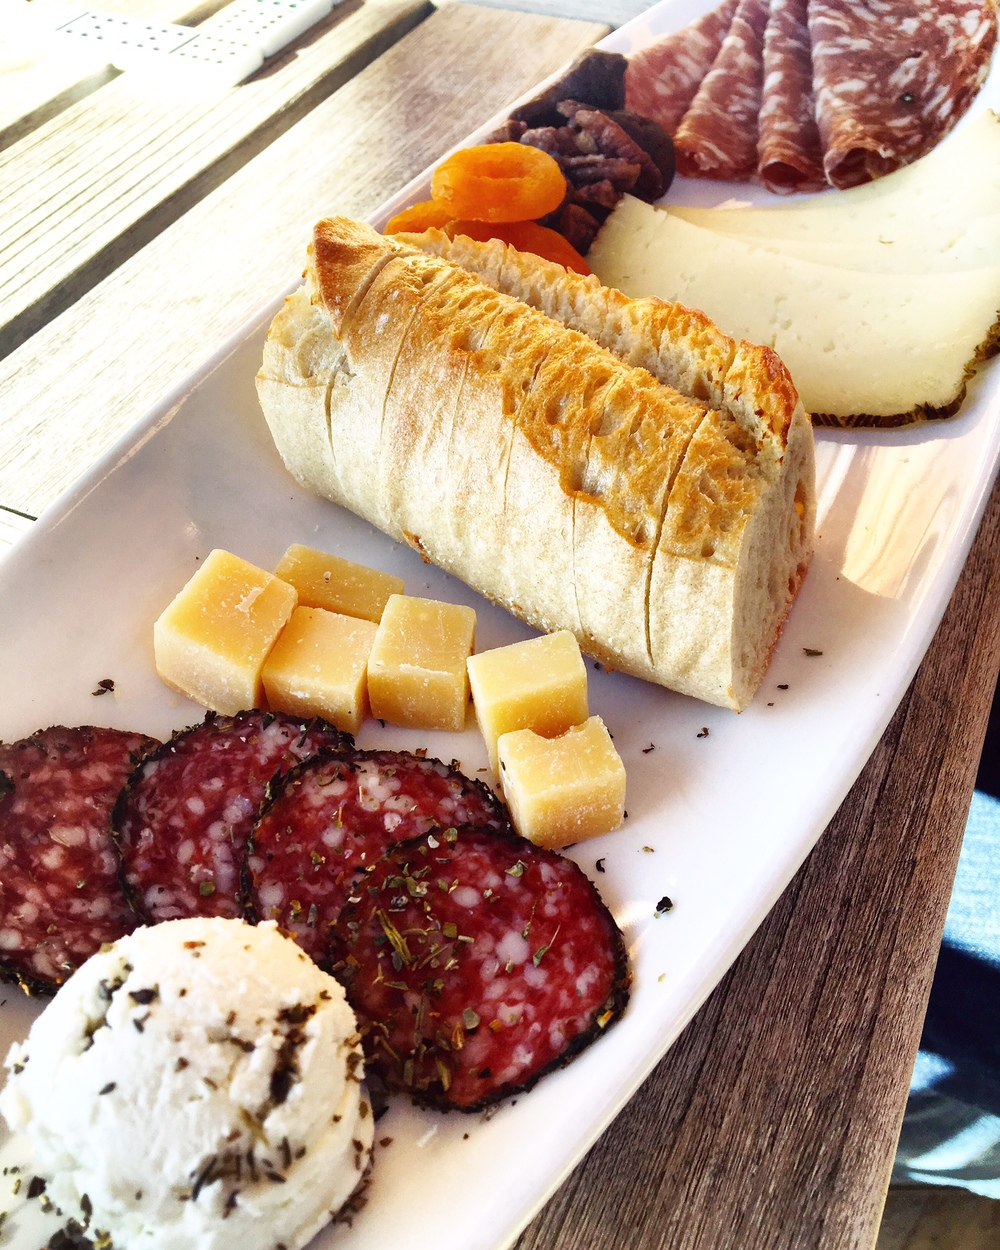 At Roblar, we snacked on cheese & charcuterie while playing dominos. More games!